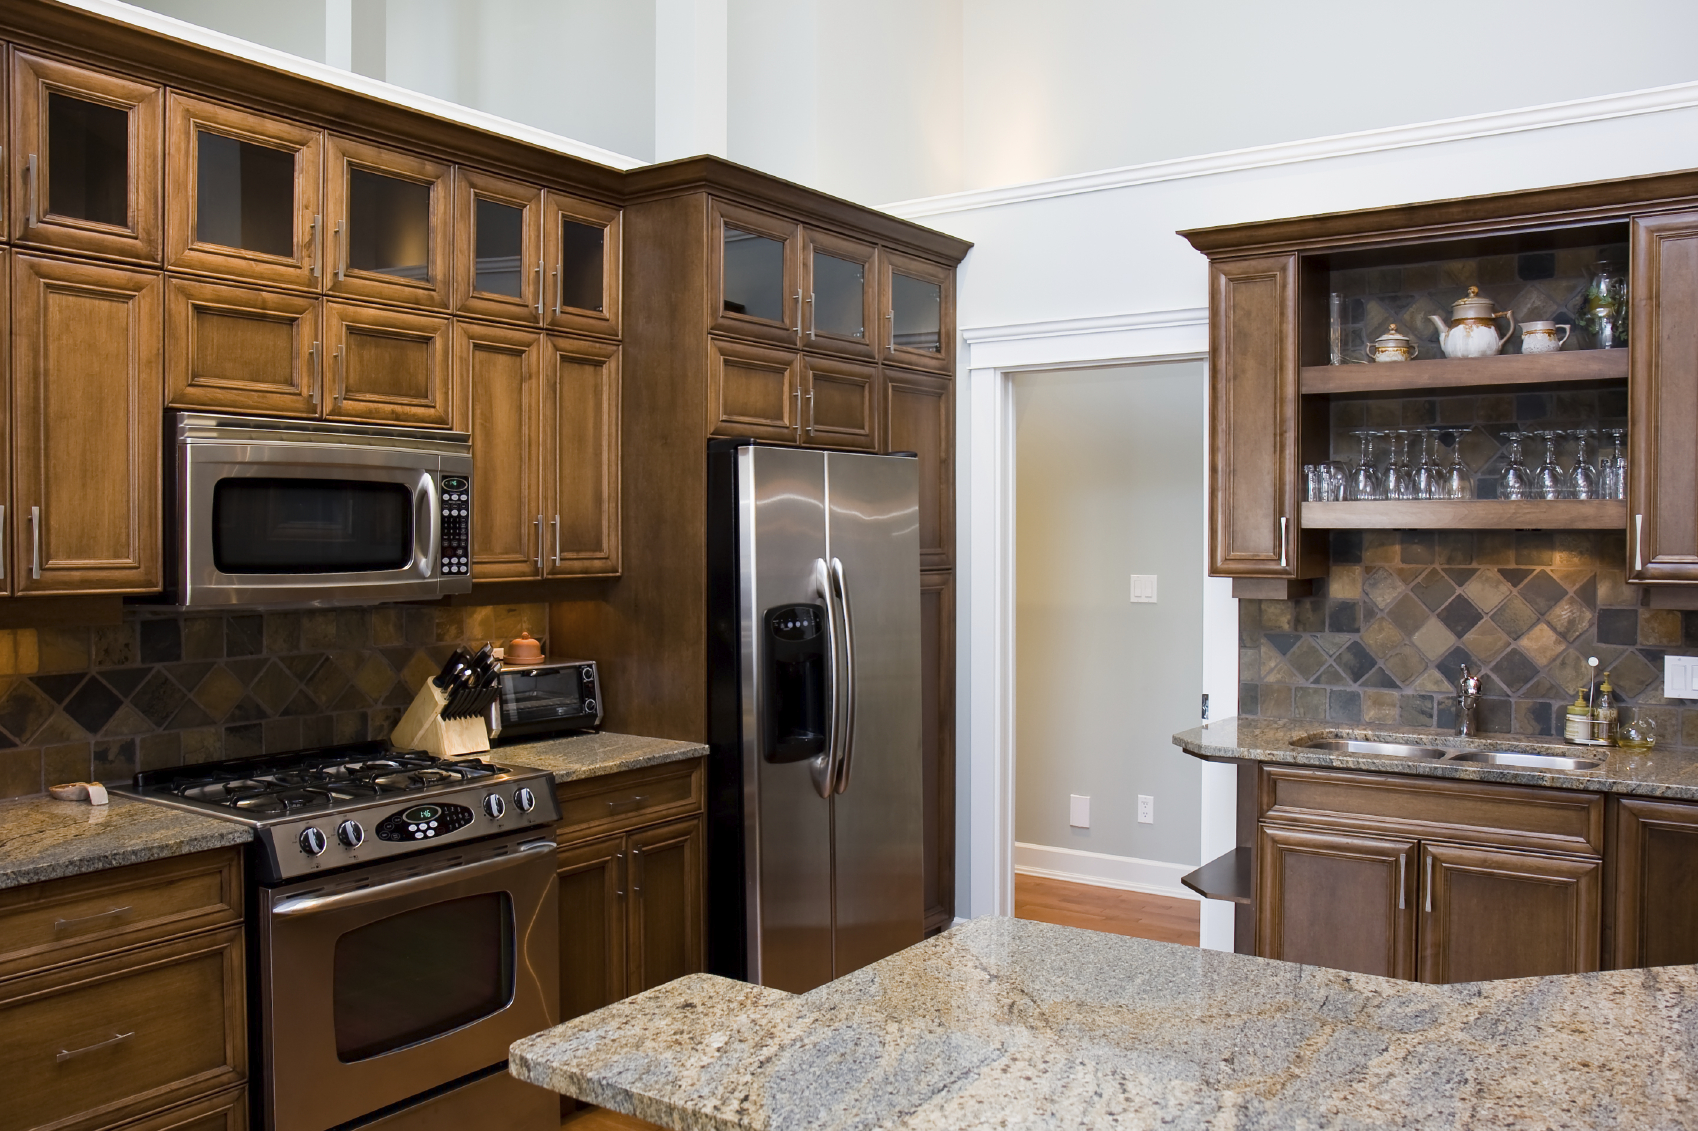 wood, with light grey marble countertops and aluminum appliances